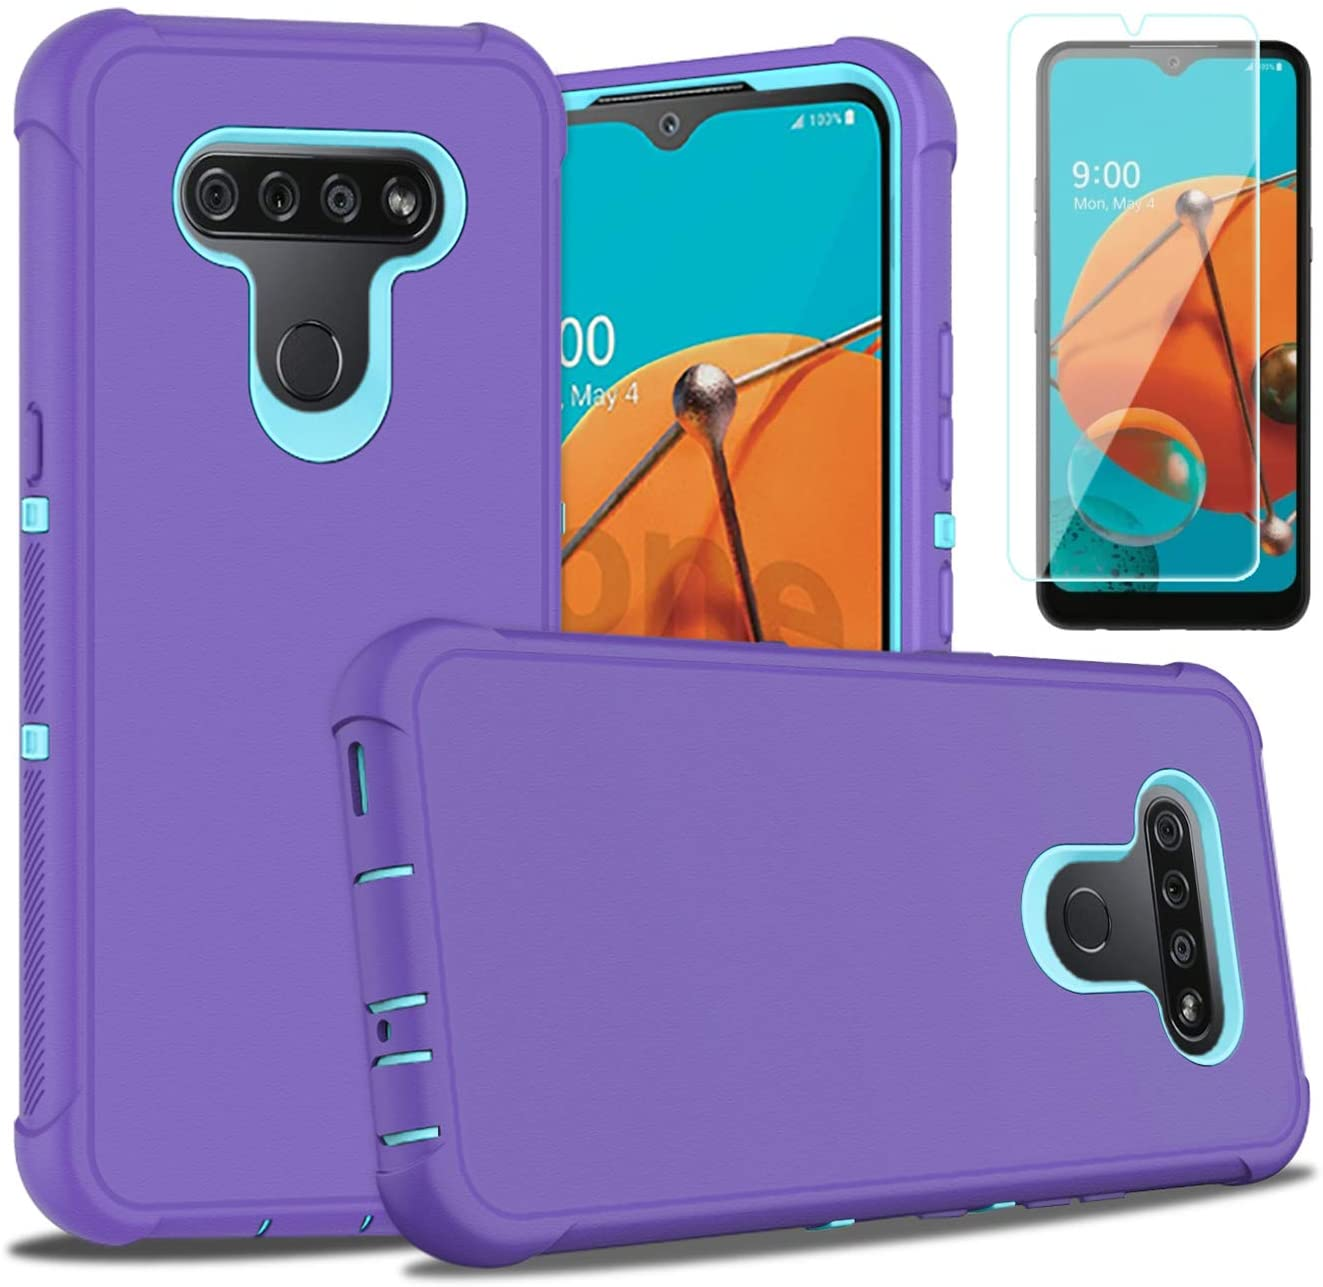 PhuLok LG K51 Case,LG K51 Phone Case,with HD Screen Protector,Heavy Duty Armor Dual Layer Shockproof Sports Anti-Scratches Non-Slip Bumper Rugged Case for LG K51 (Purple/Sky Blue)